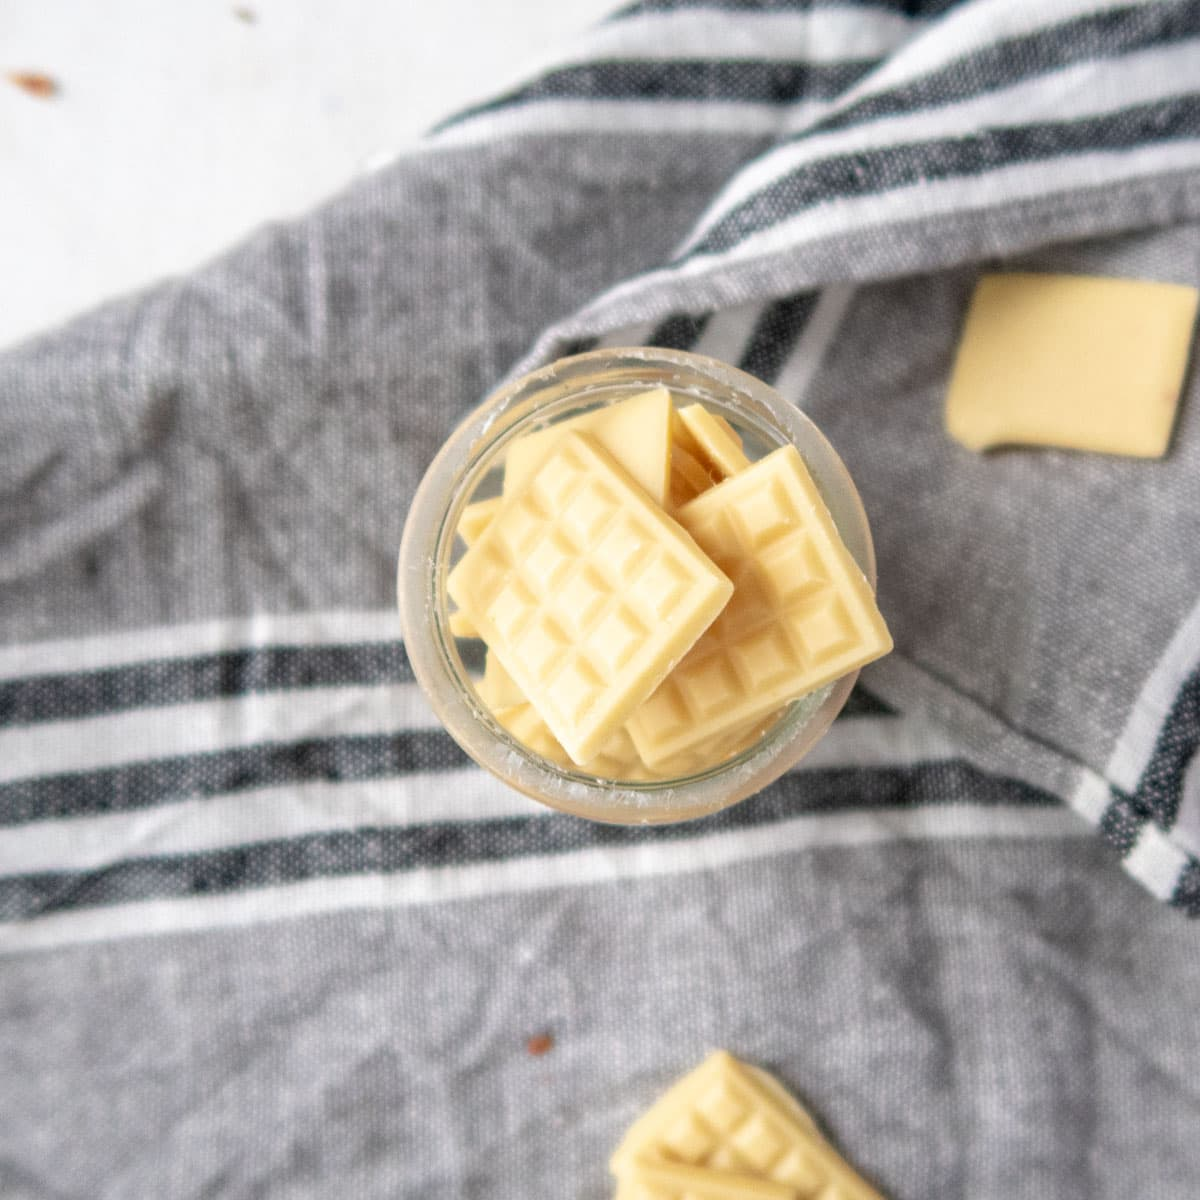 mini vegan white chocolate bars in a jar on top of a grey towel